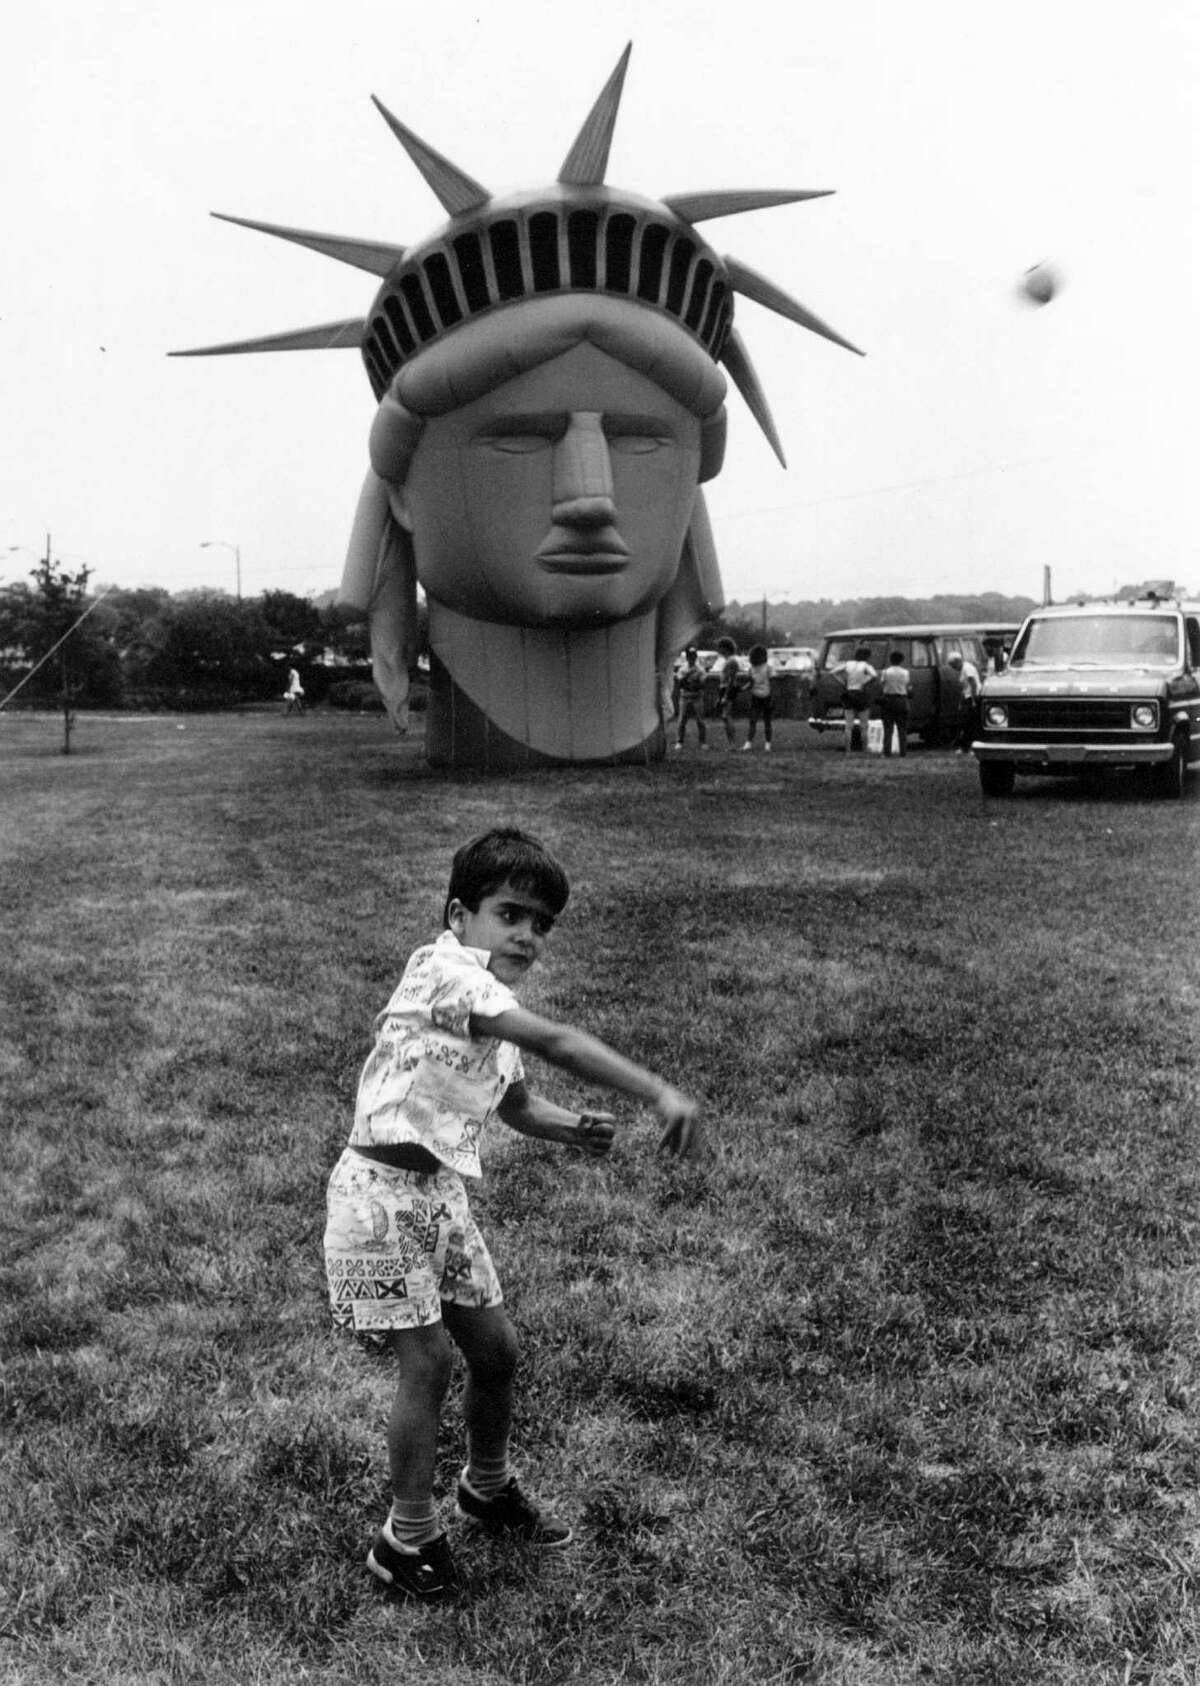 July 4, 1987: Carlos Lopez, 5, of Stamford frolics in Cummings Park in front of a balloon facsimile of the Statue of Liberty's head. The balloon was set to float above the park in the city's fourth of July celebration.